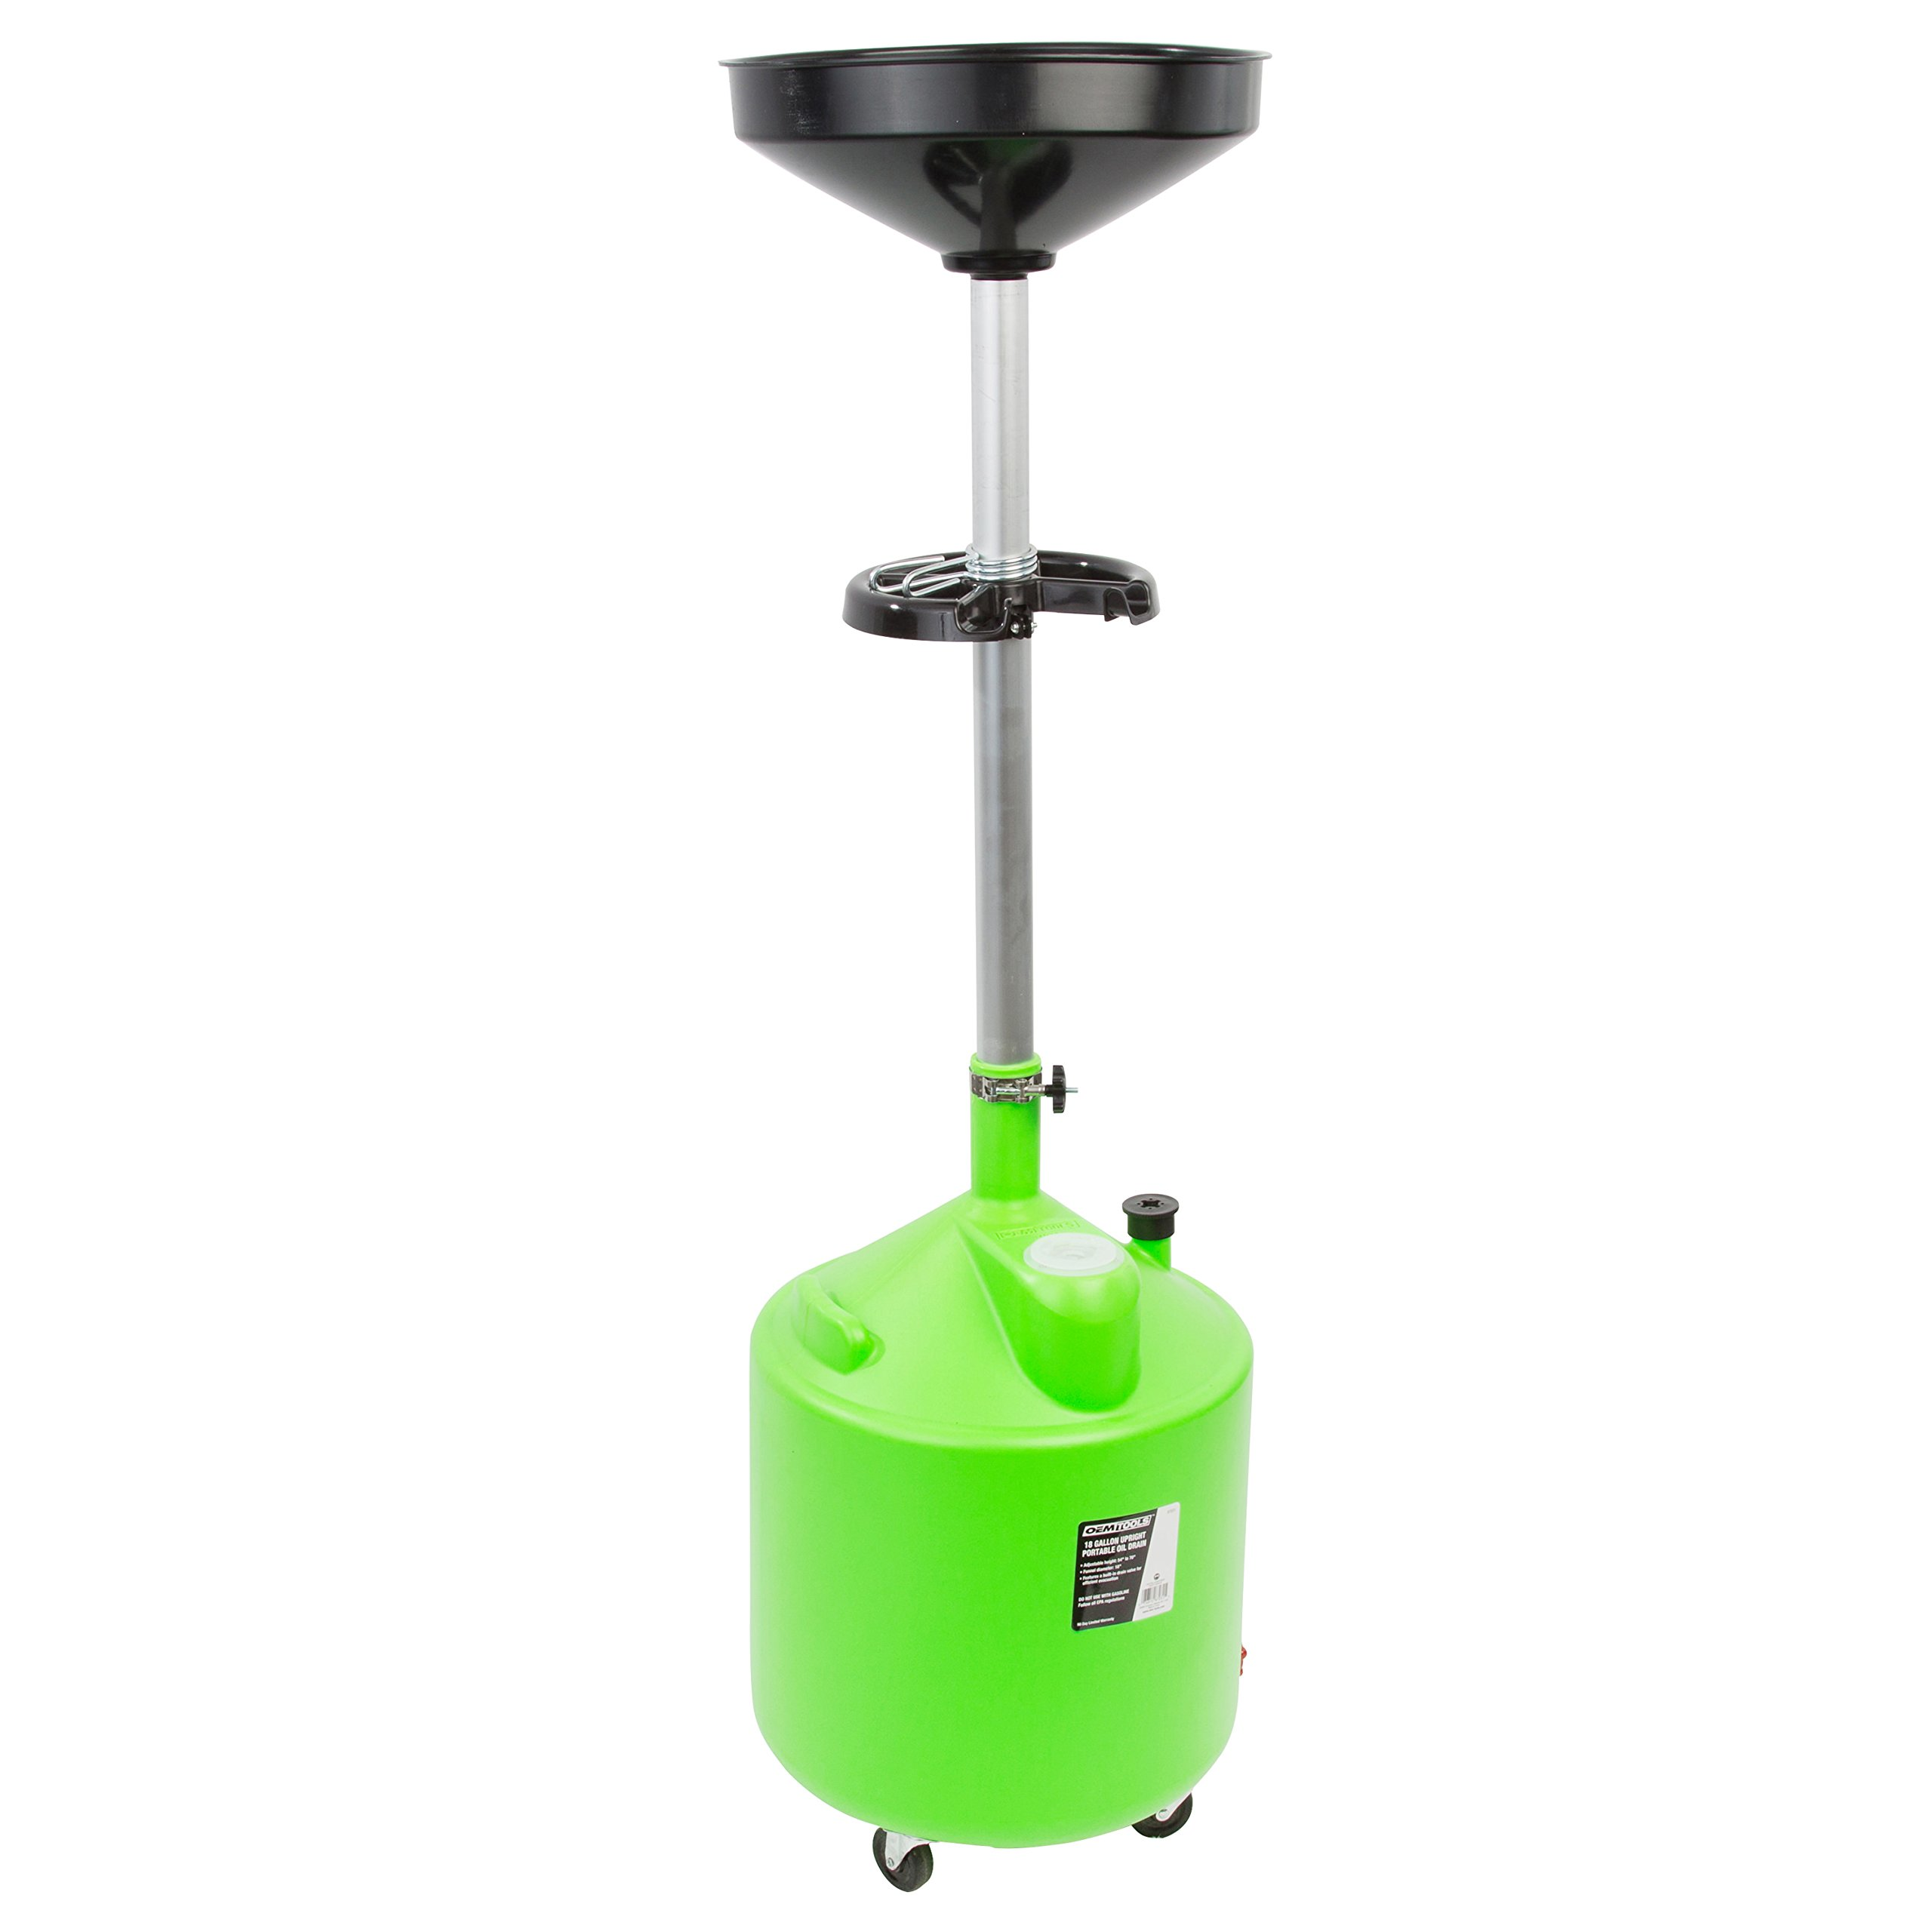 OEMTOOLS 87031 18 Gallon Portable Upright Lift Changing Car and Truck Motor Oil – Adjustable Height, Drain Valve and Tool Tray by OEMTOOLS (Image #6)